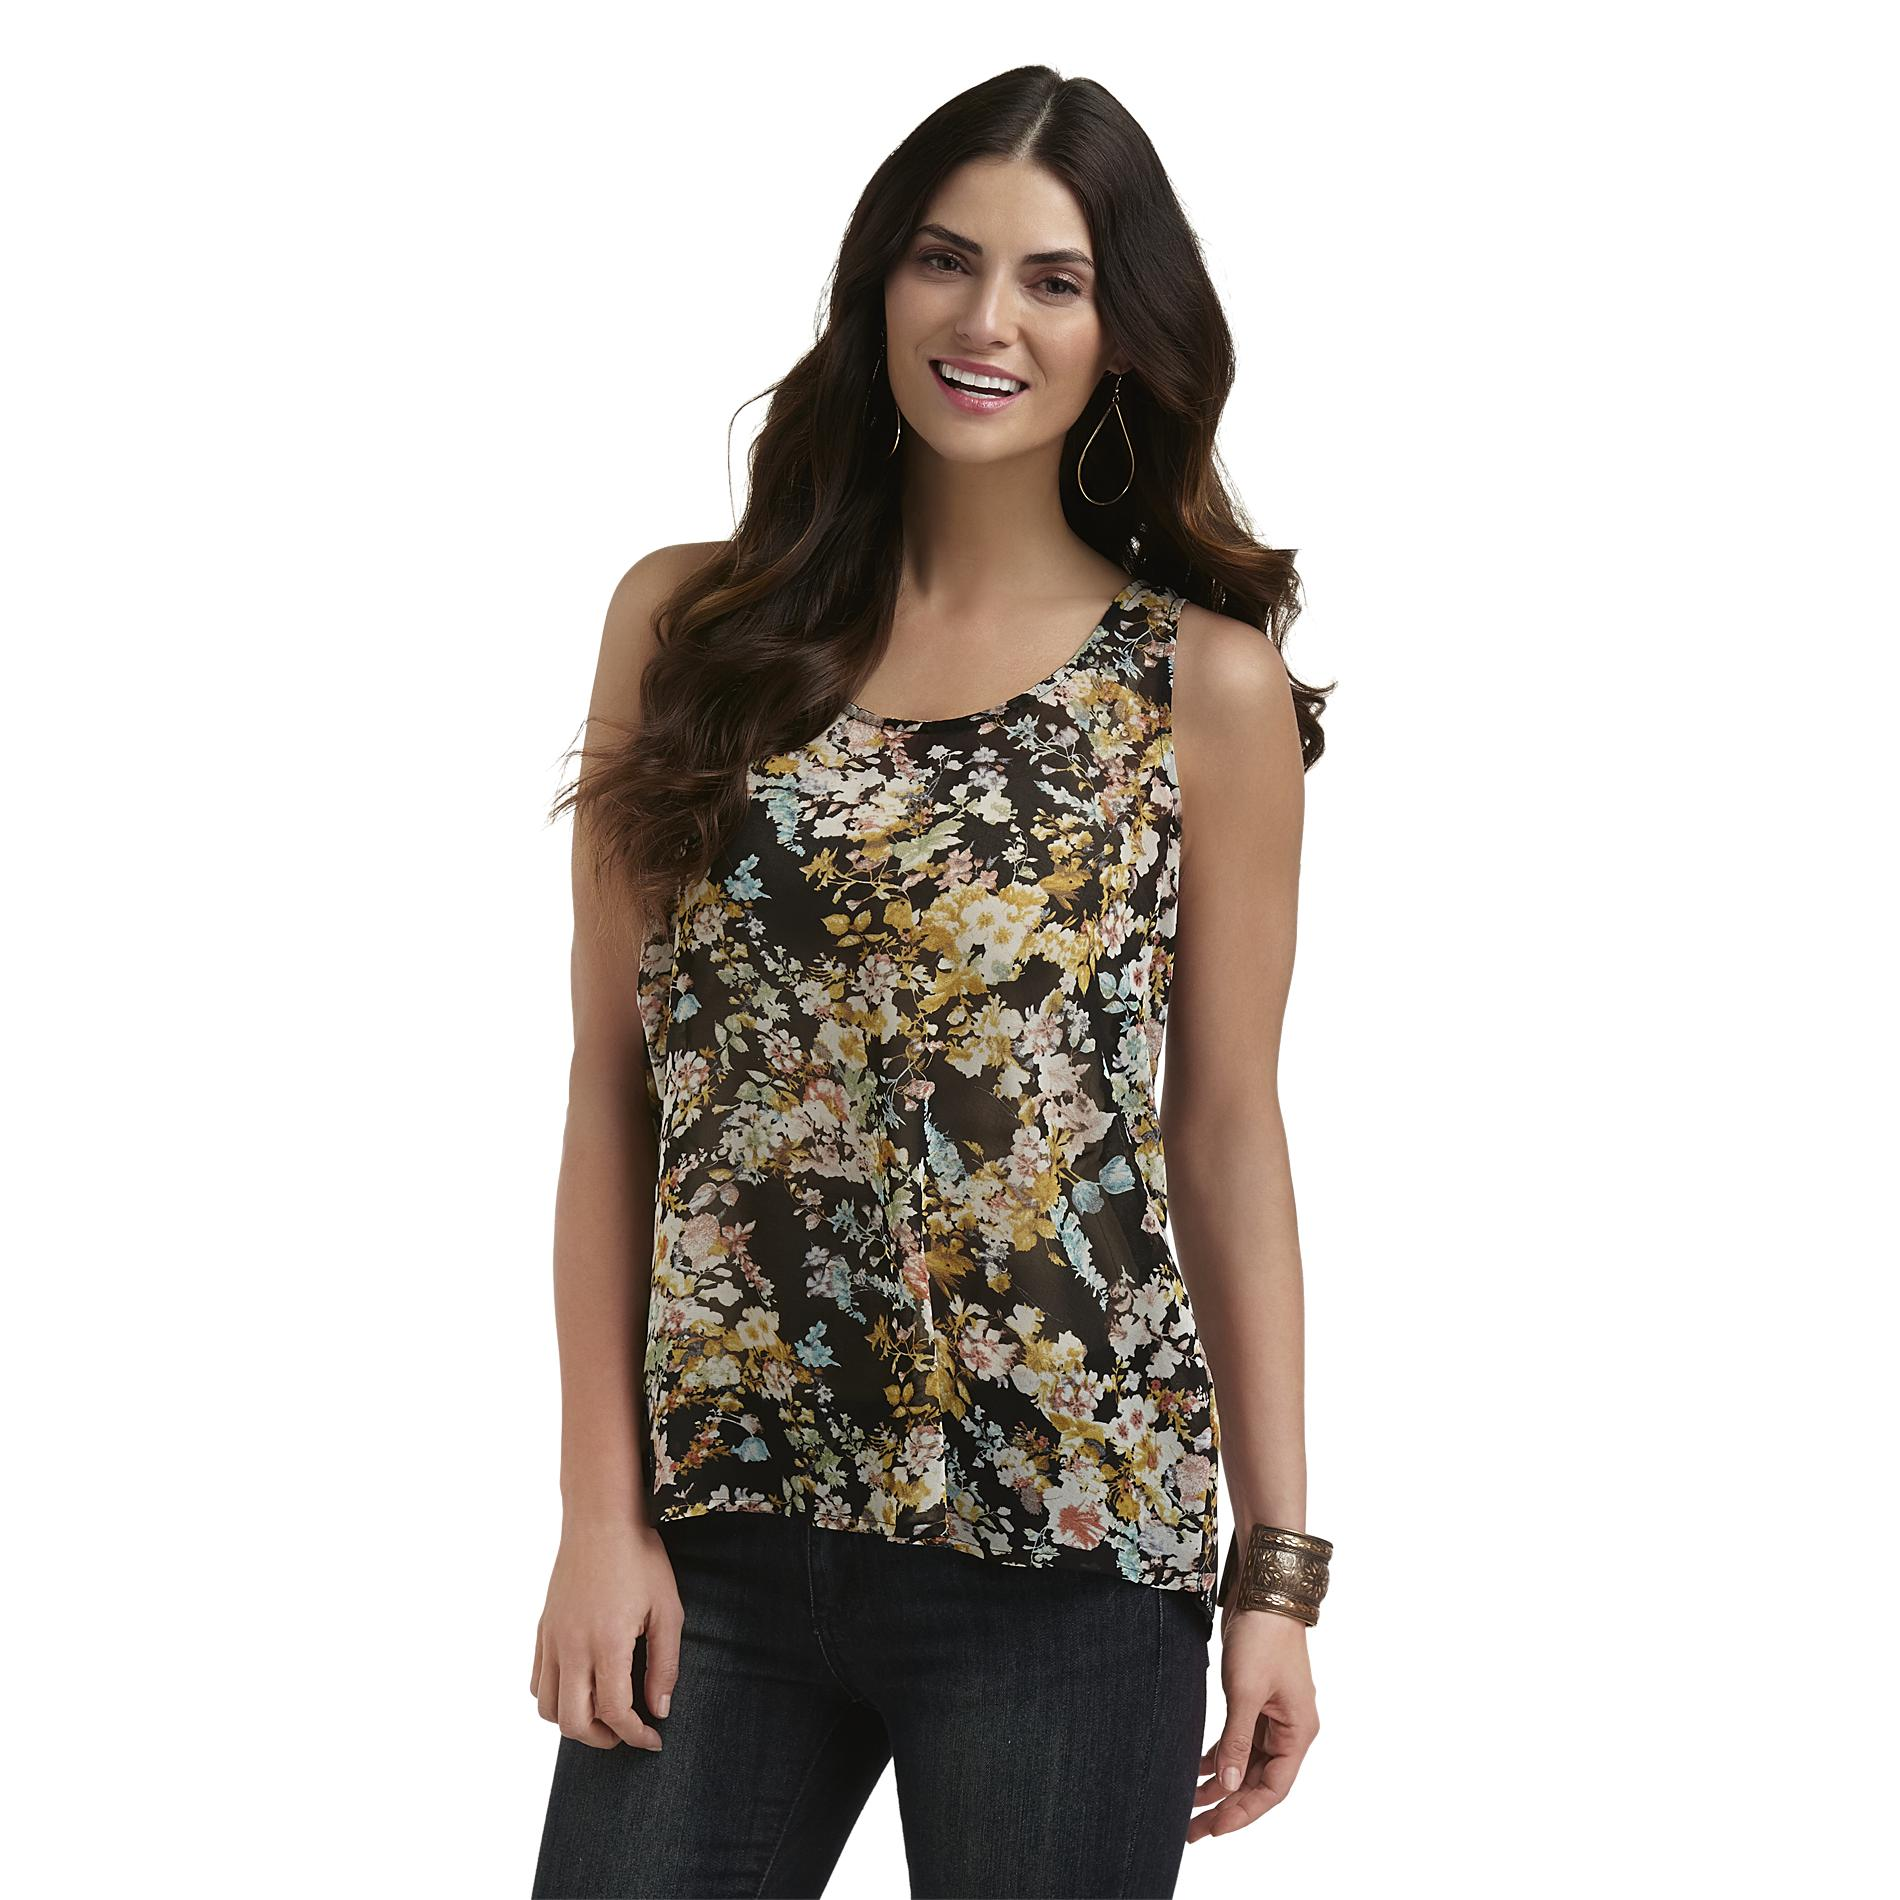 Metaphor Women's High-Low Tank Top - Floral at Sears.com